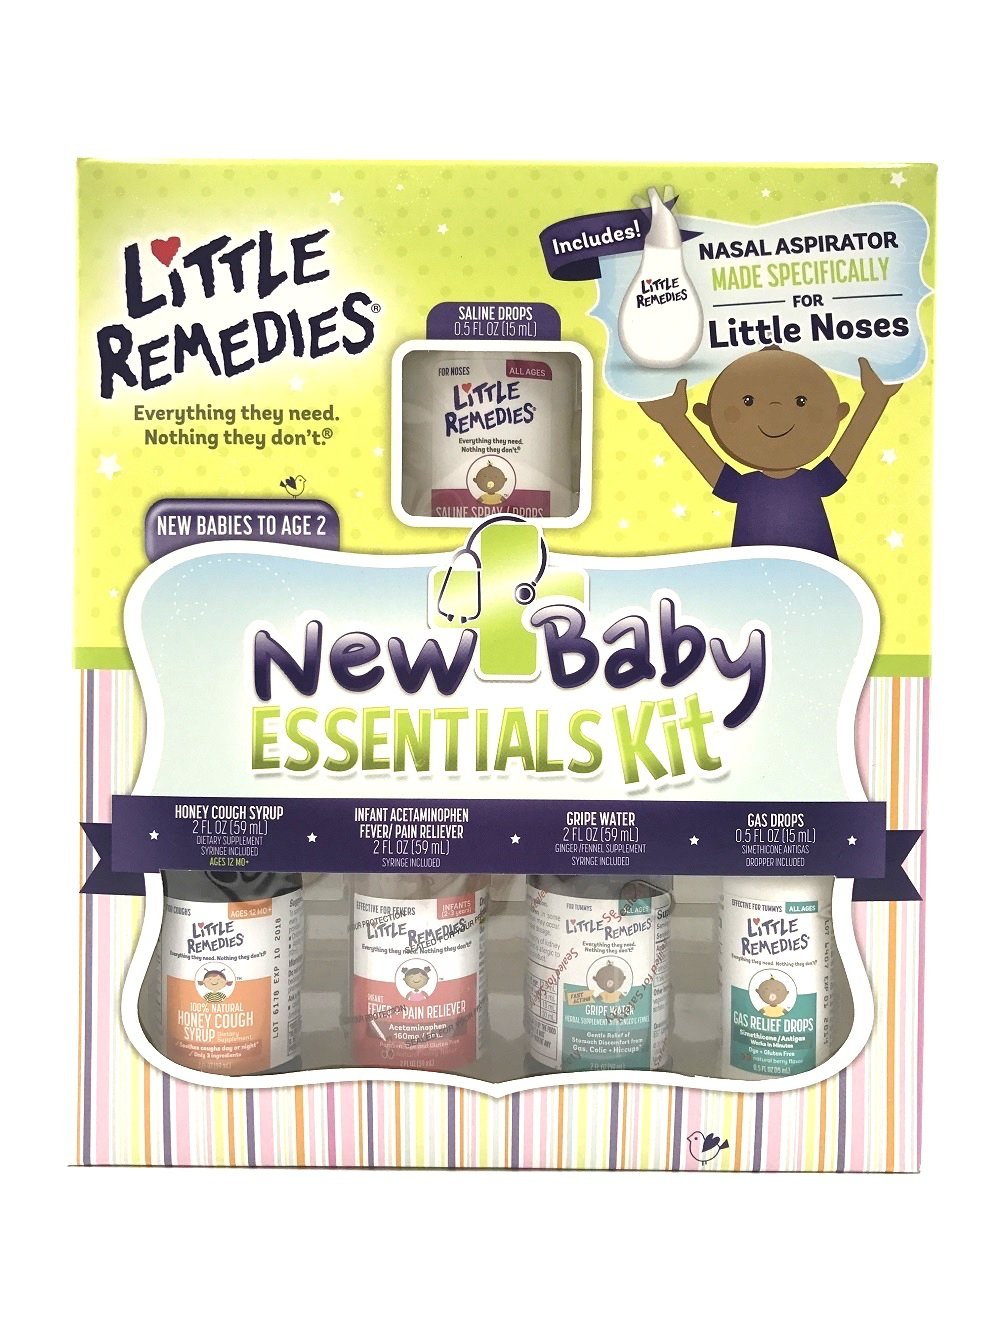 Little Remedies New Baby Essentials Kit | A Gift Set for New Moms | 6 Products Featuring Little Remedies & Boudreaux's Butt Paste Products Prestige Brands 10756184107208